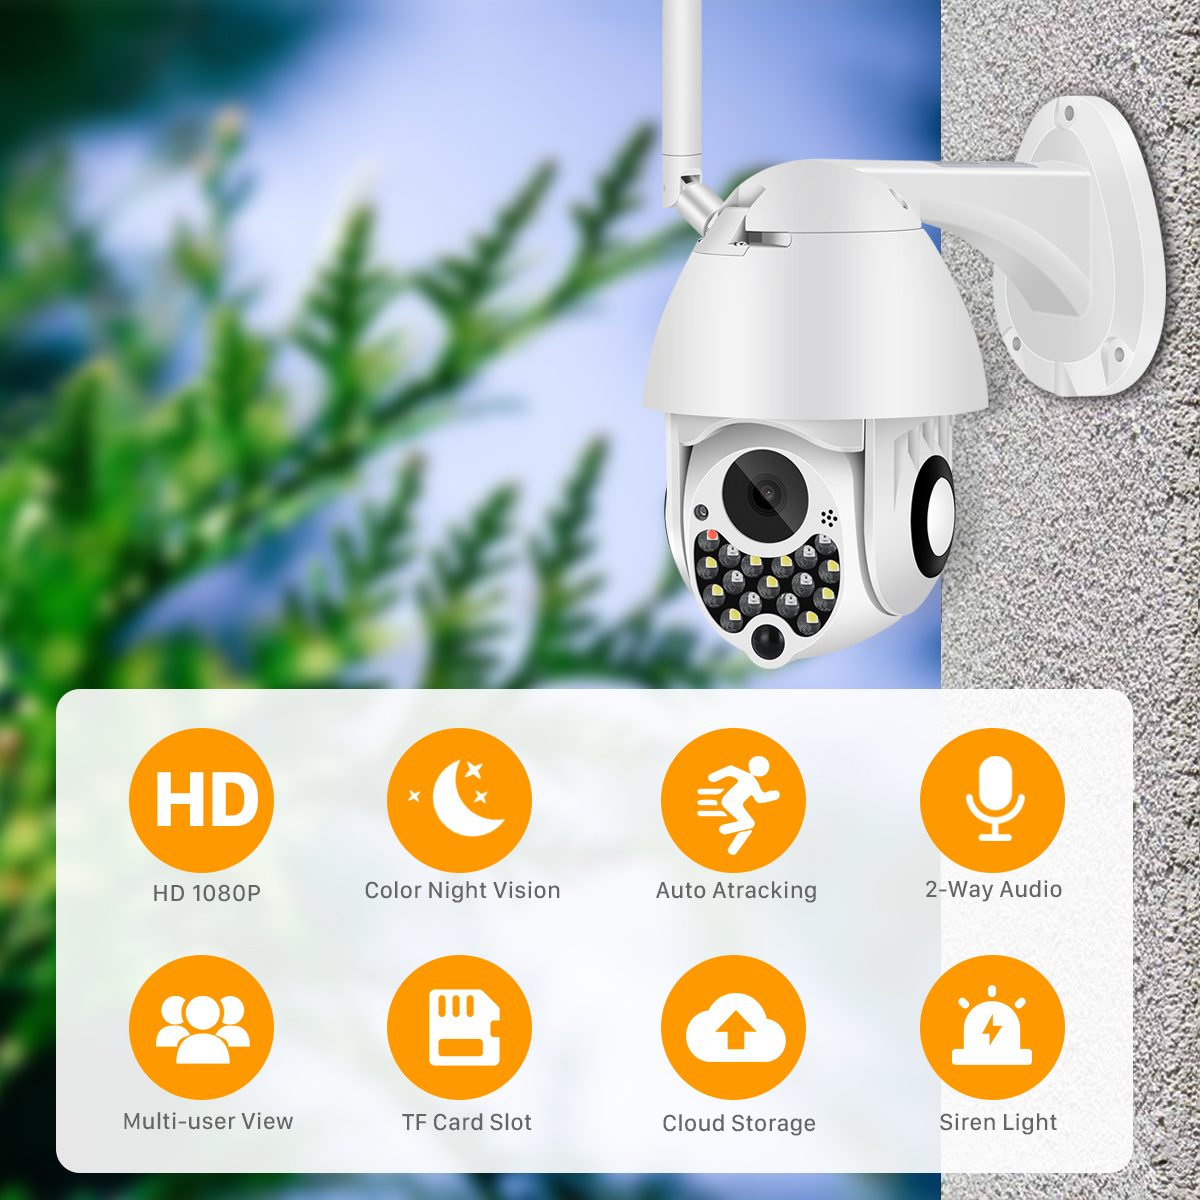 H761f9629ebd44ee7a73262cf70fedf99u 1080P Outdoor Wifi PTZ Camera with Siren Light Auto Tracking Cloud Home Security IP Camera 2MP 4X Digital Zoom Speed Dome Camera